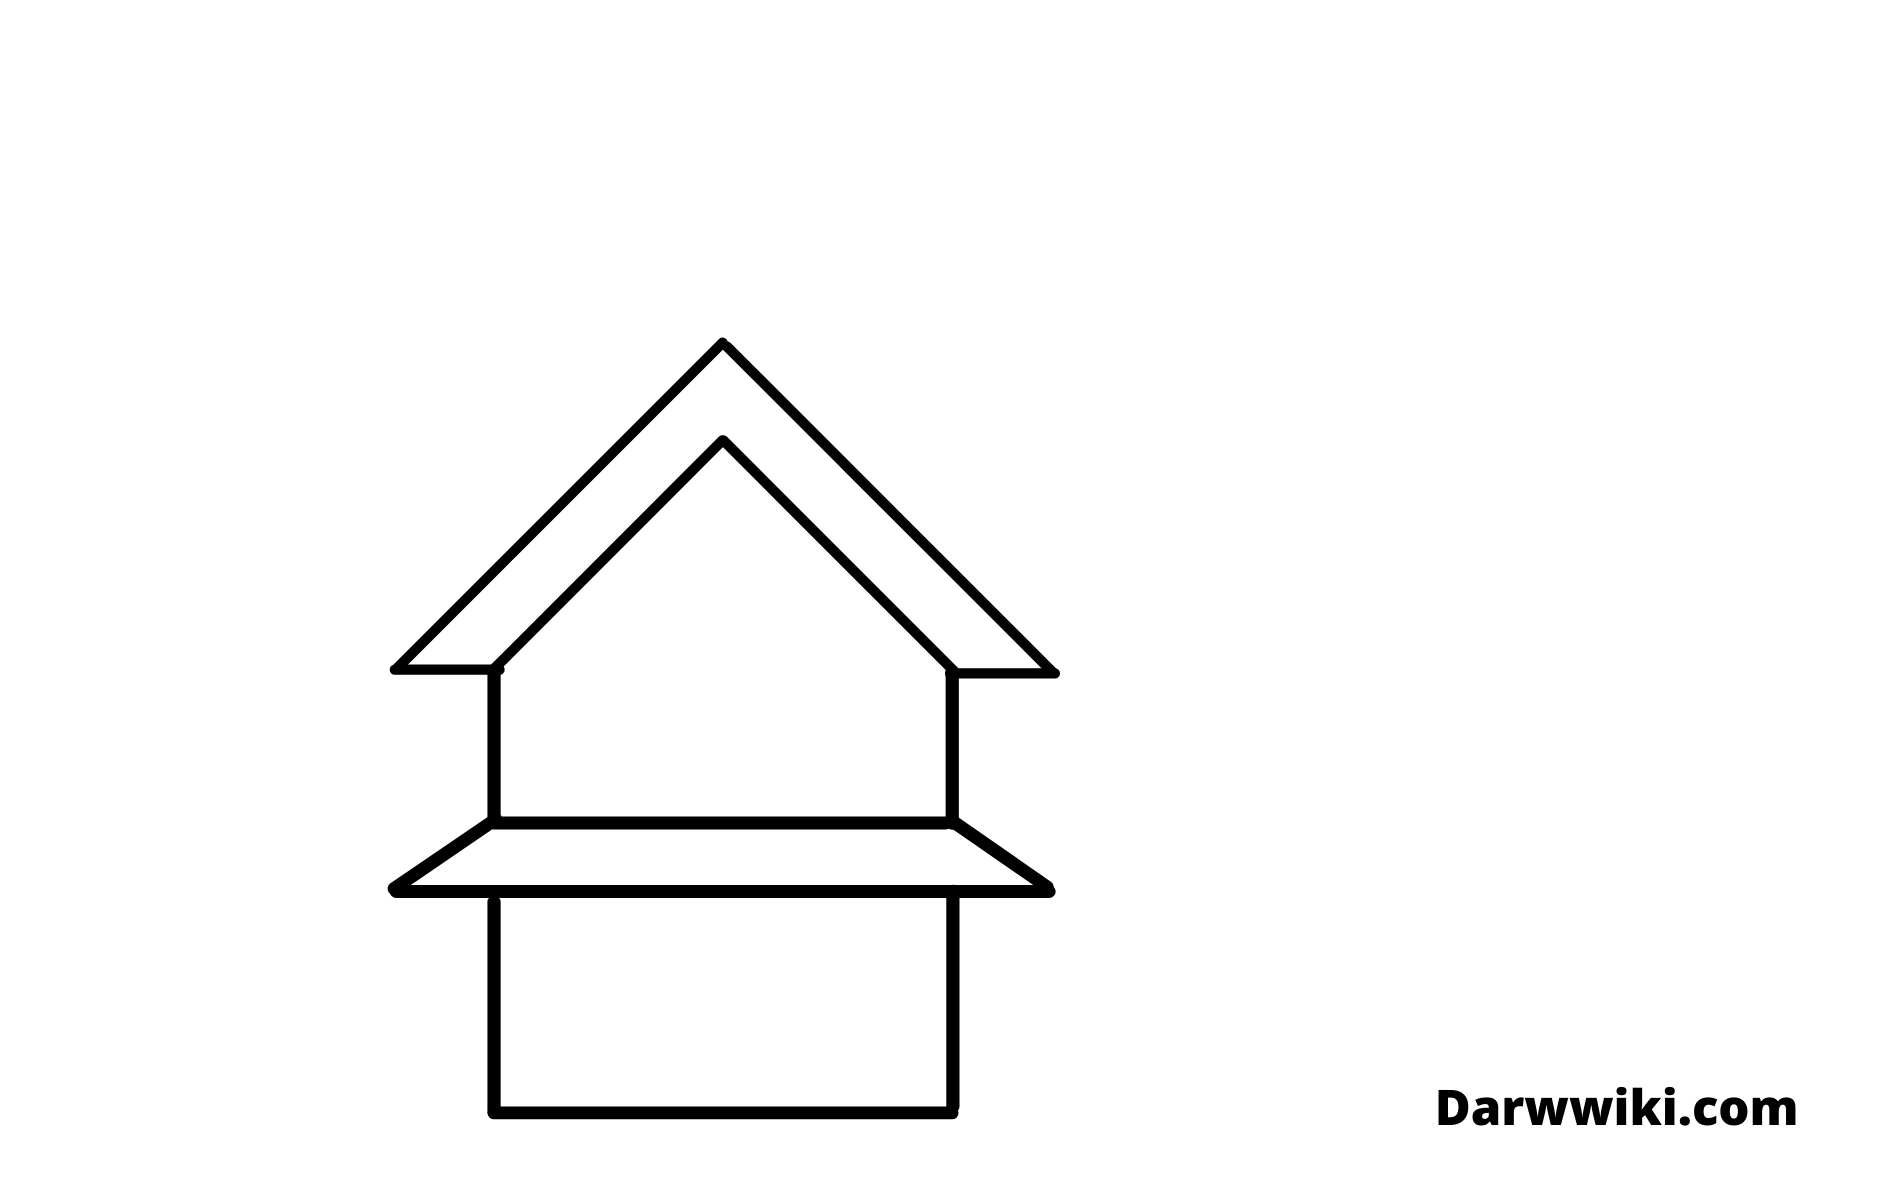 How to draw house Step 2- Draw First Part of the Wall Outline